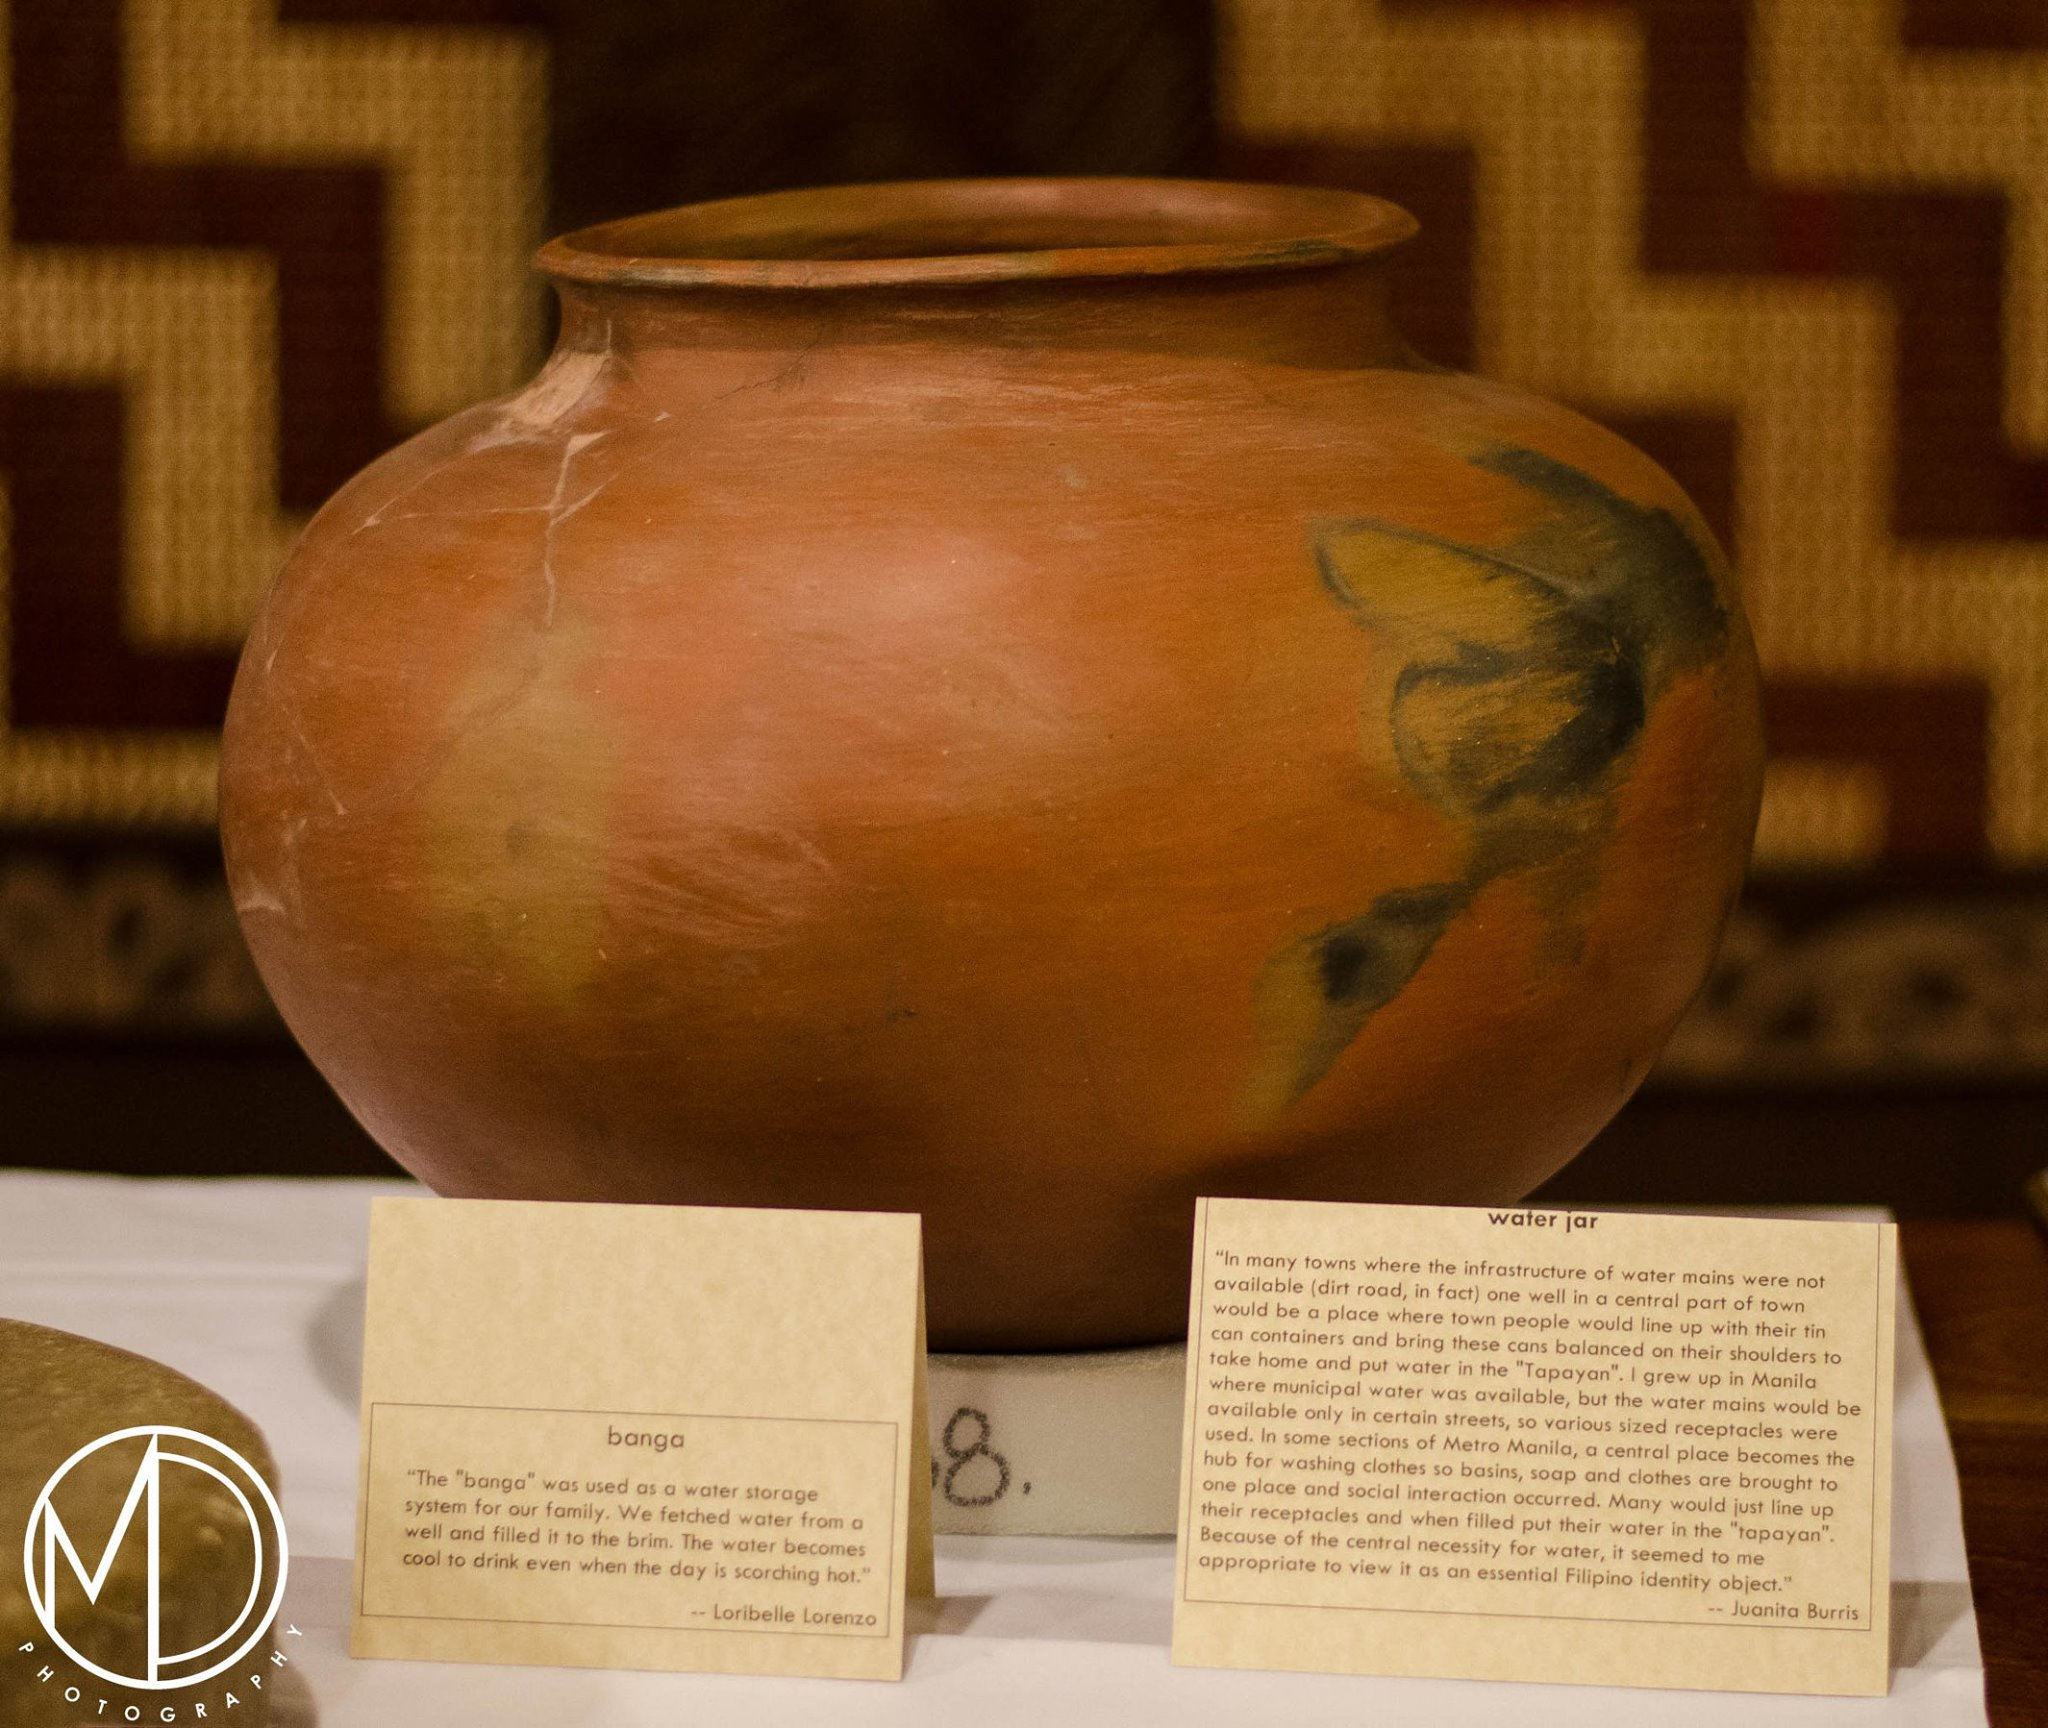 Close up image of a water jar on the artifact display tables.